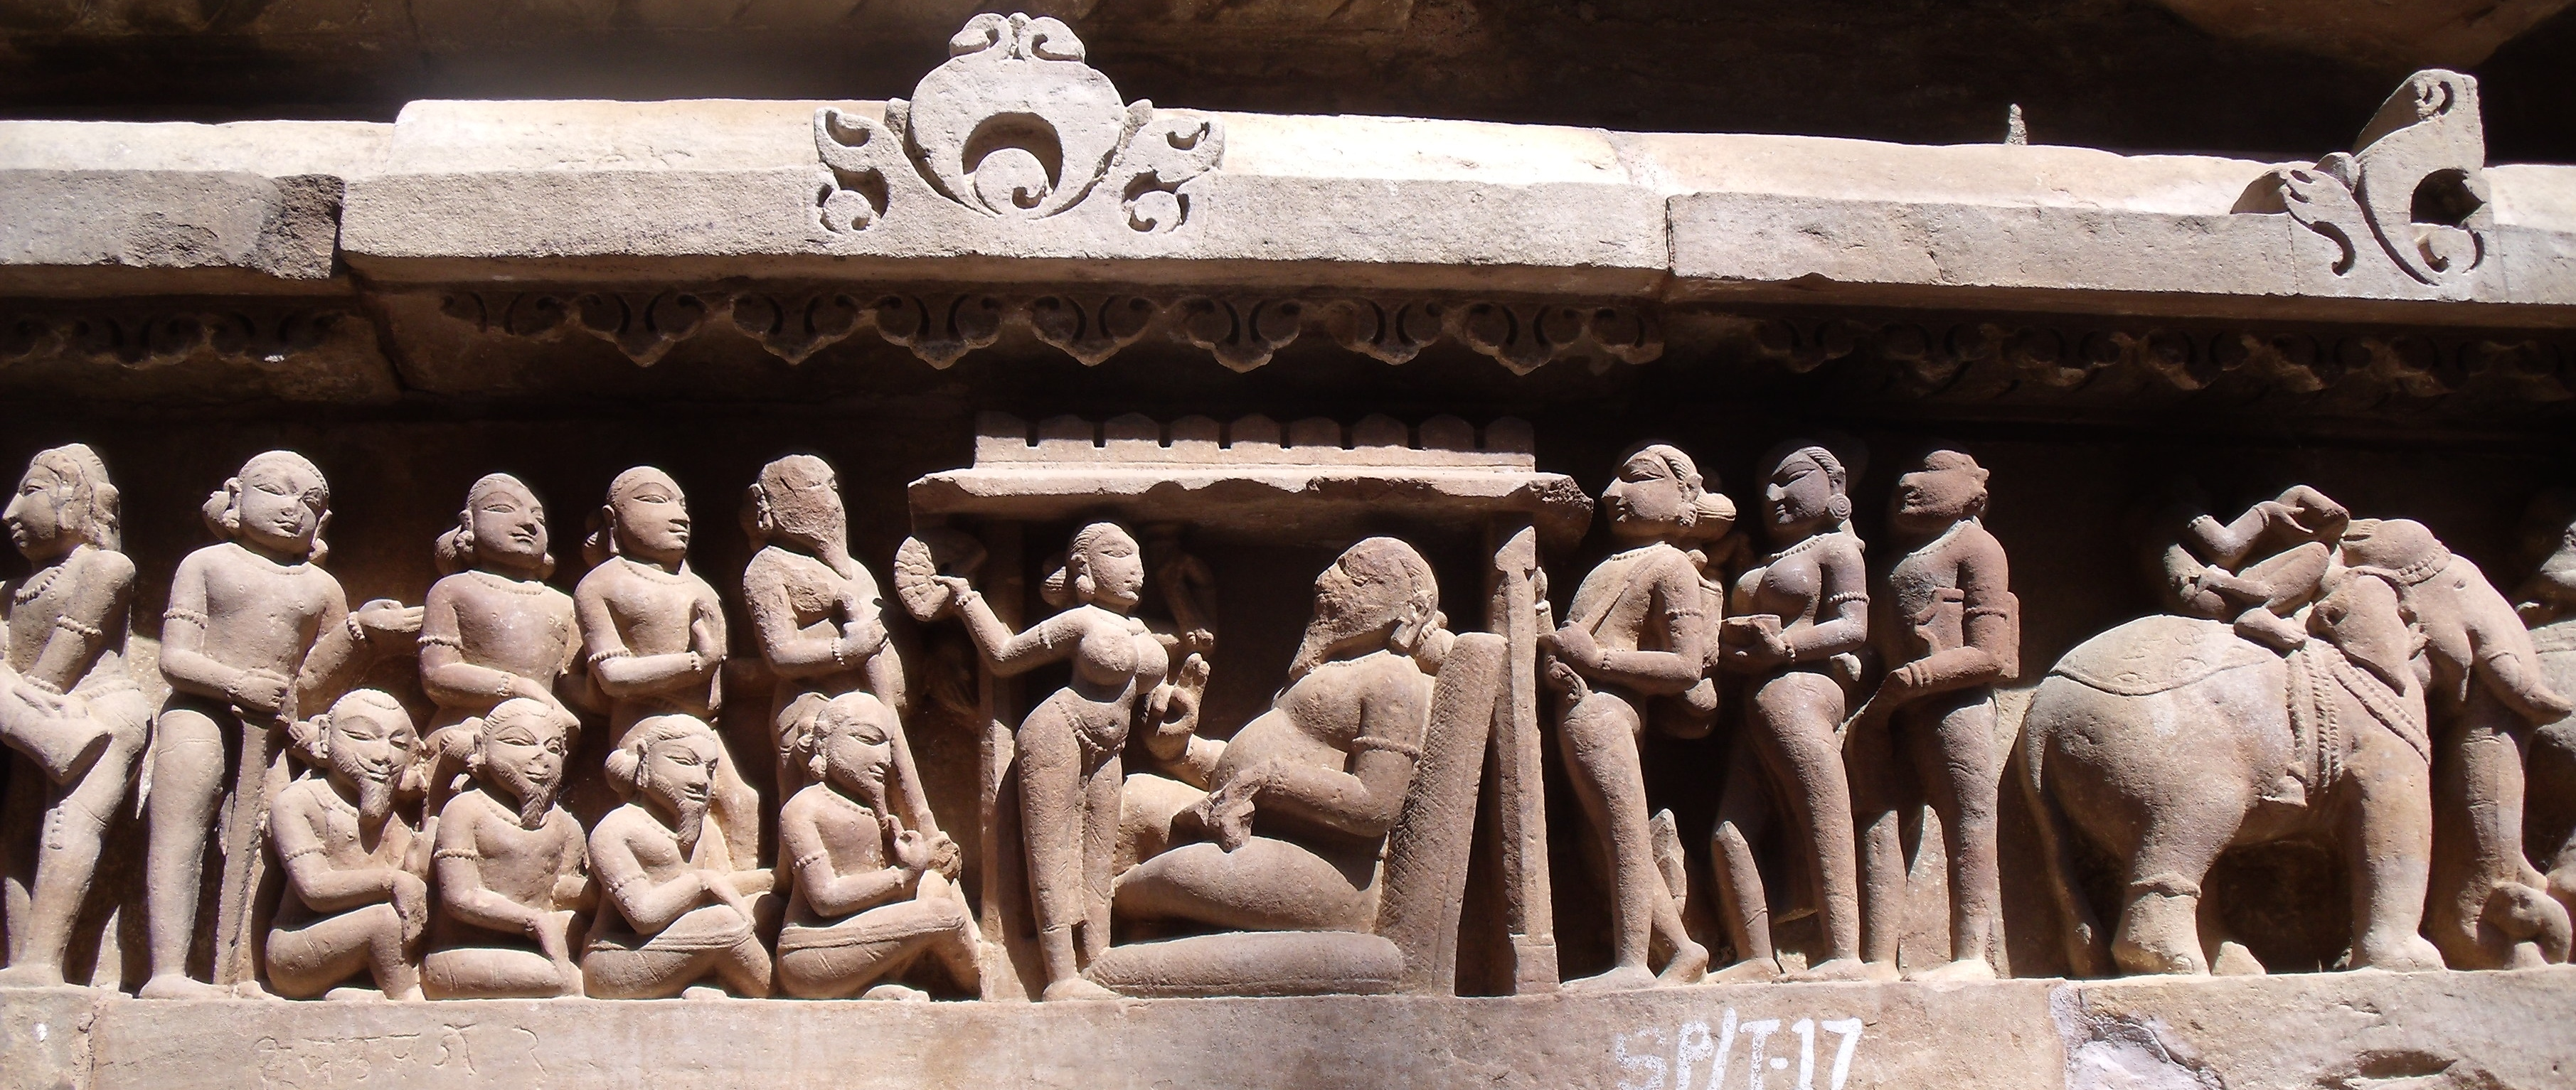 Khajuraho. High reliefs on base of temple.